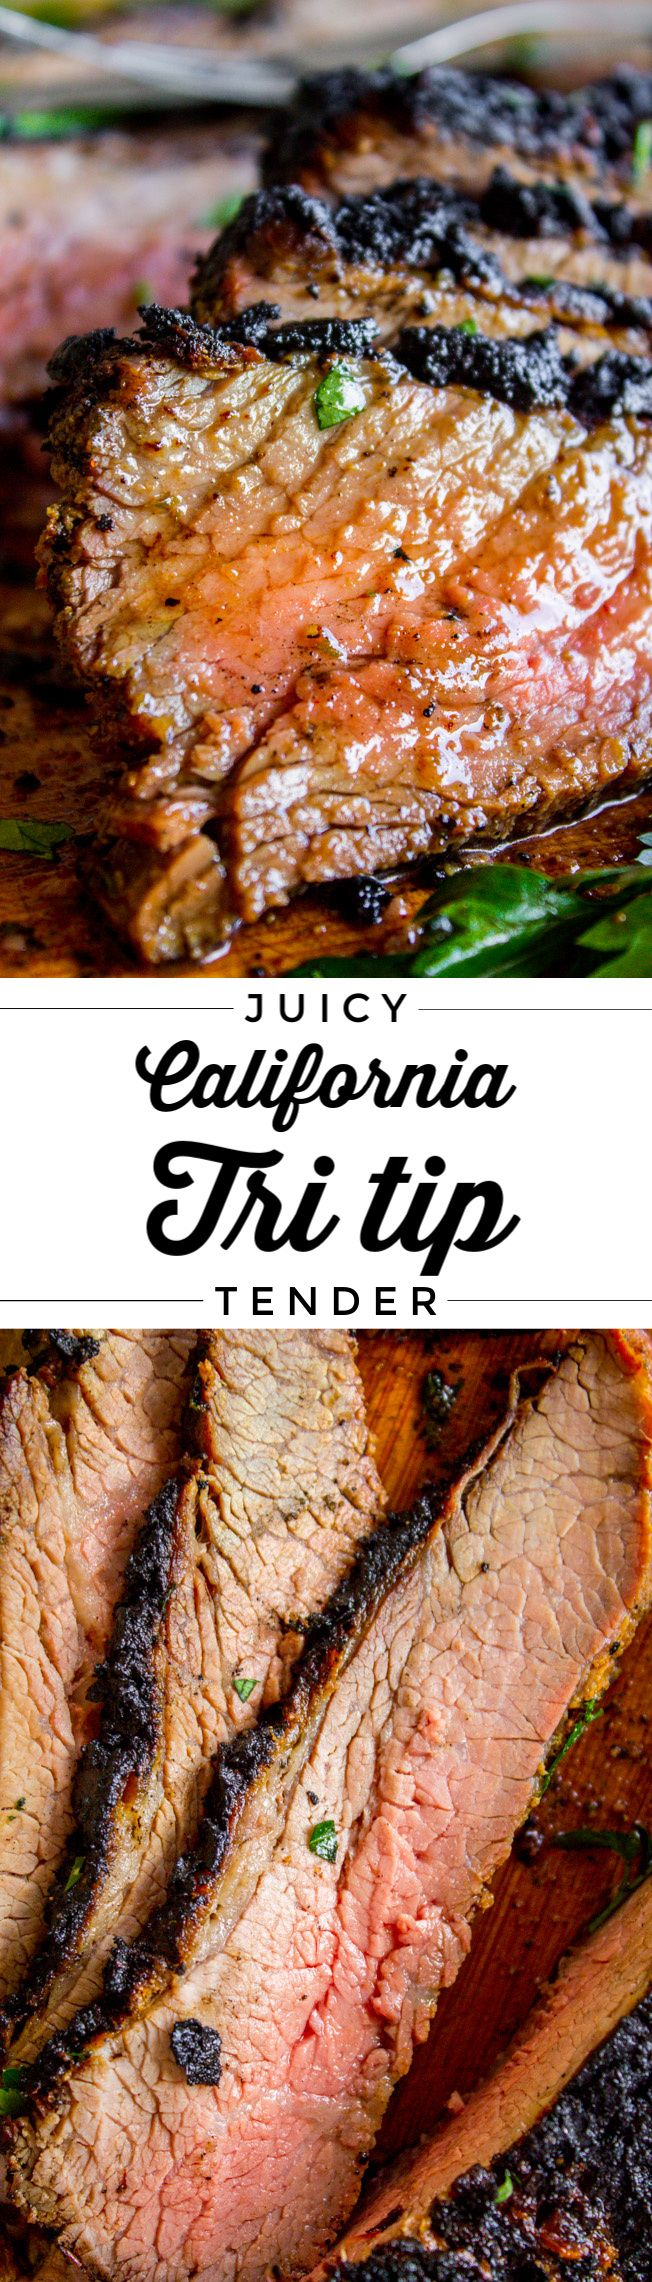 How to Cook Tri Tip (Grilled or Oven-Roasted) from The Food Charlatan. If you've never had tri tip,